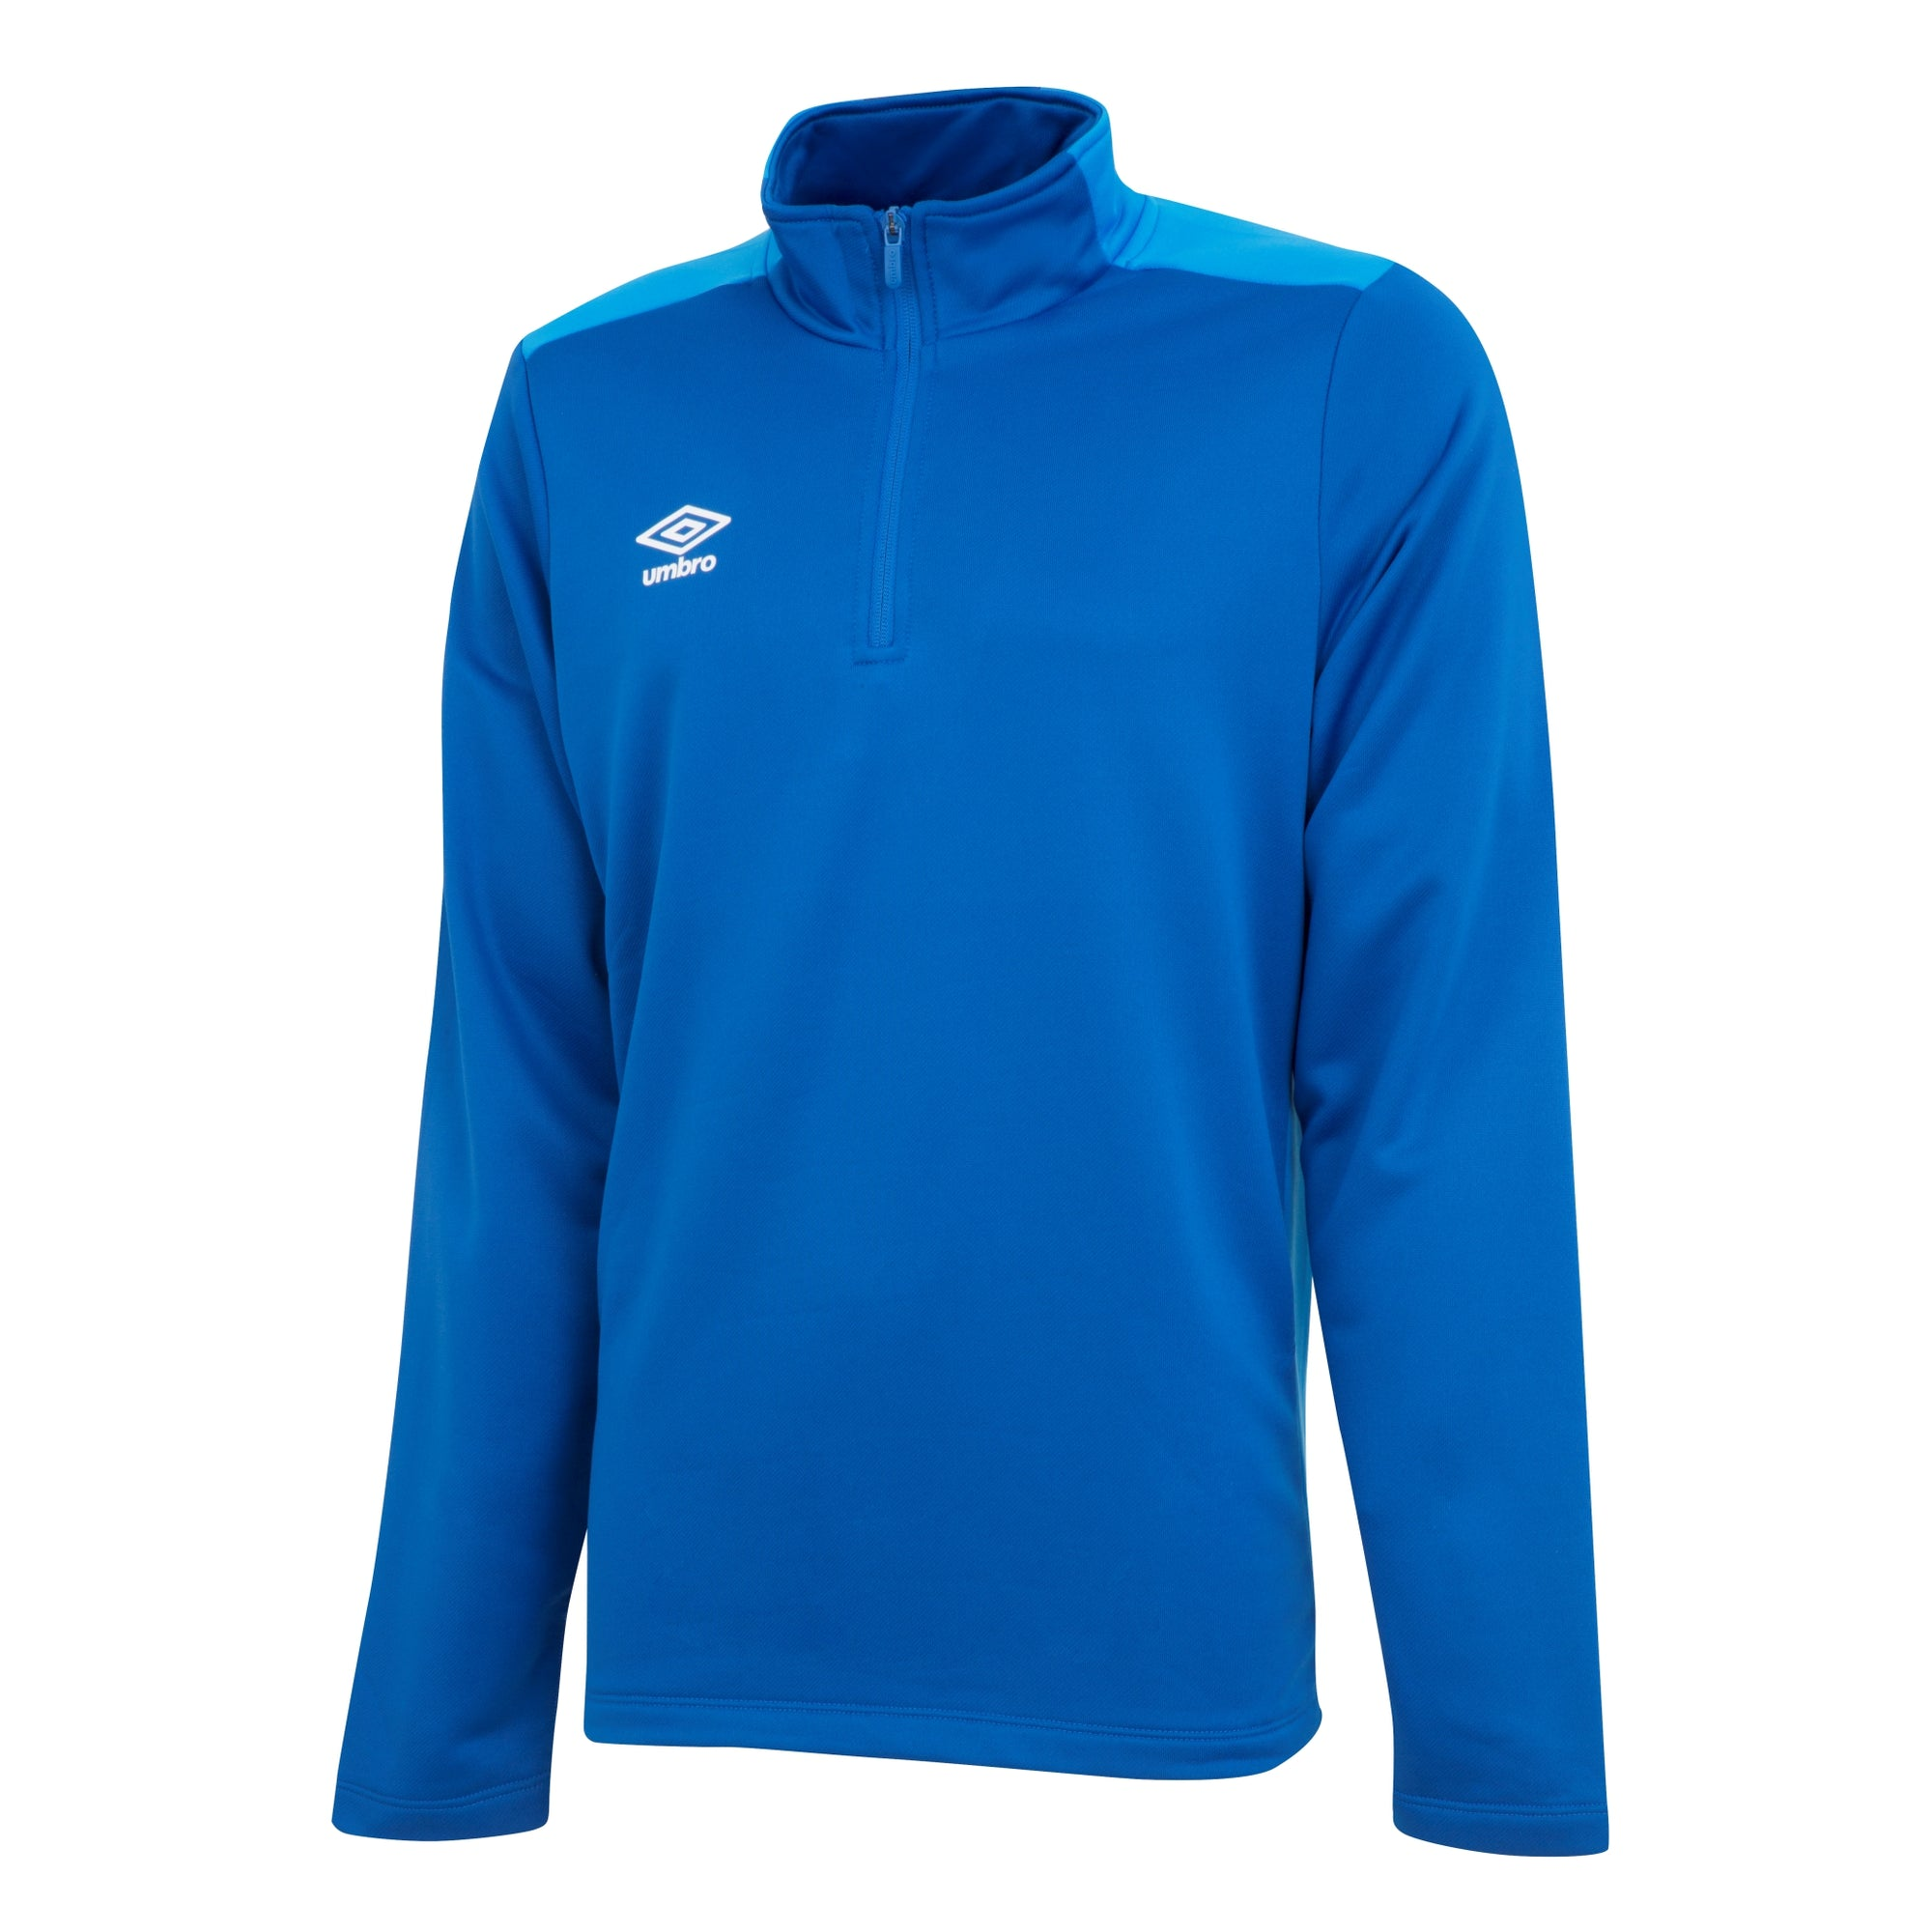 Umbro 1/2 zip top in French royal/TW royal.